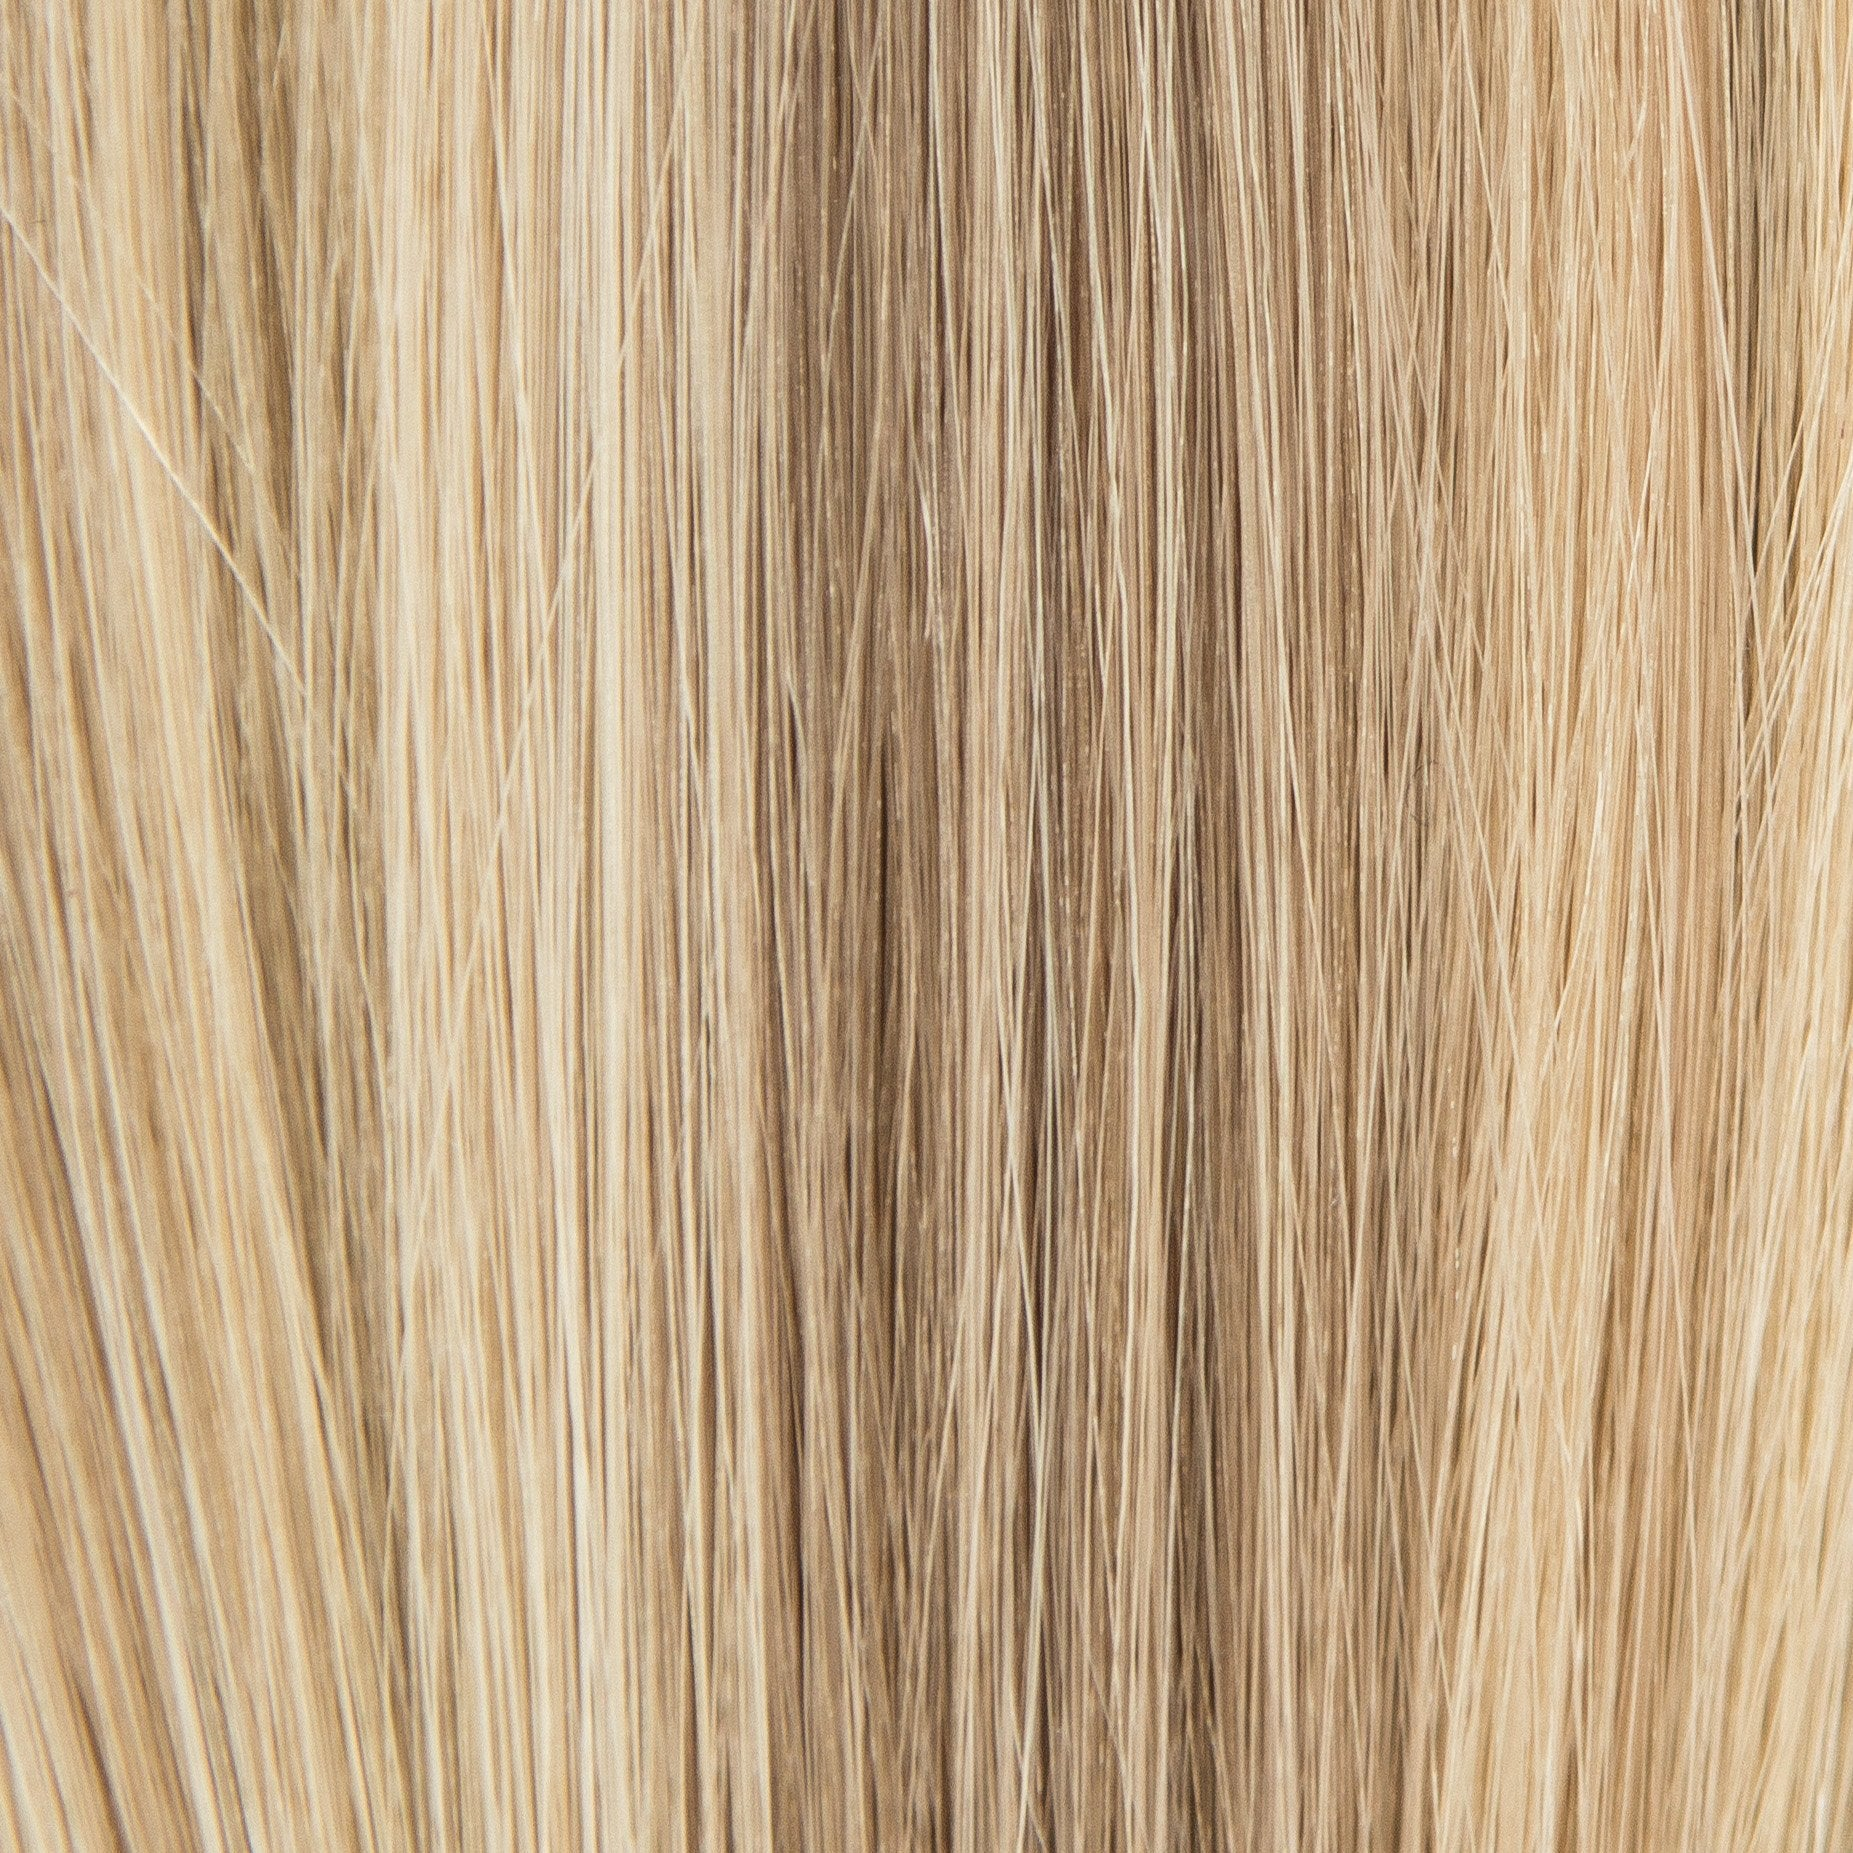 Laced Hair Hand Tied Weft Extensions Dimensional #10/16